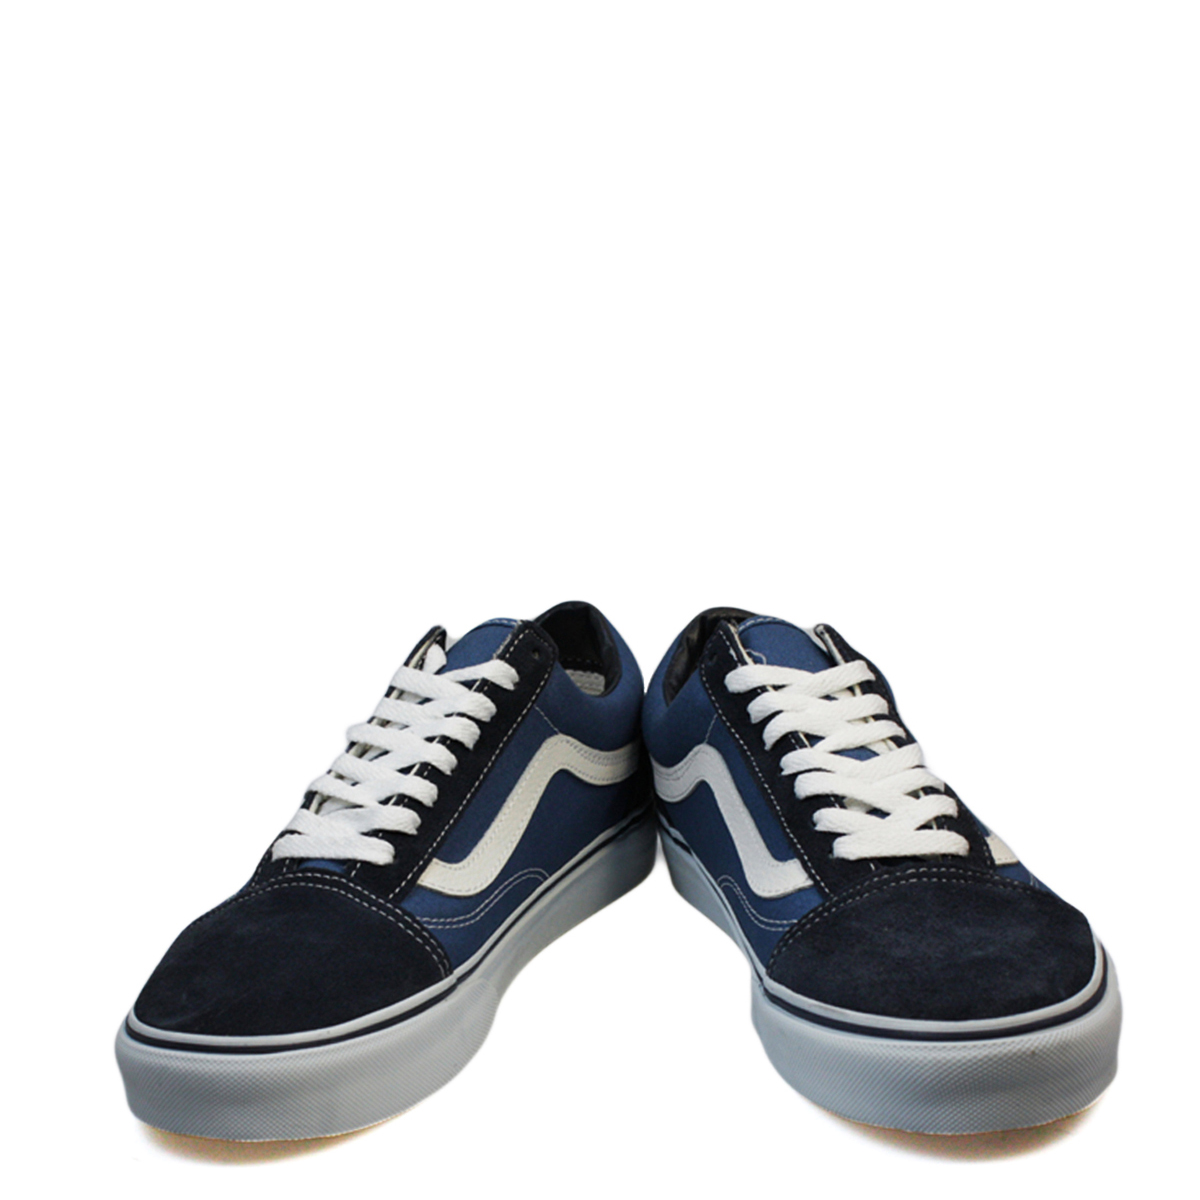 vans old skool blue suede > OFF64% Discounts